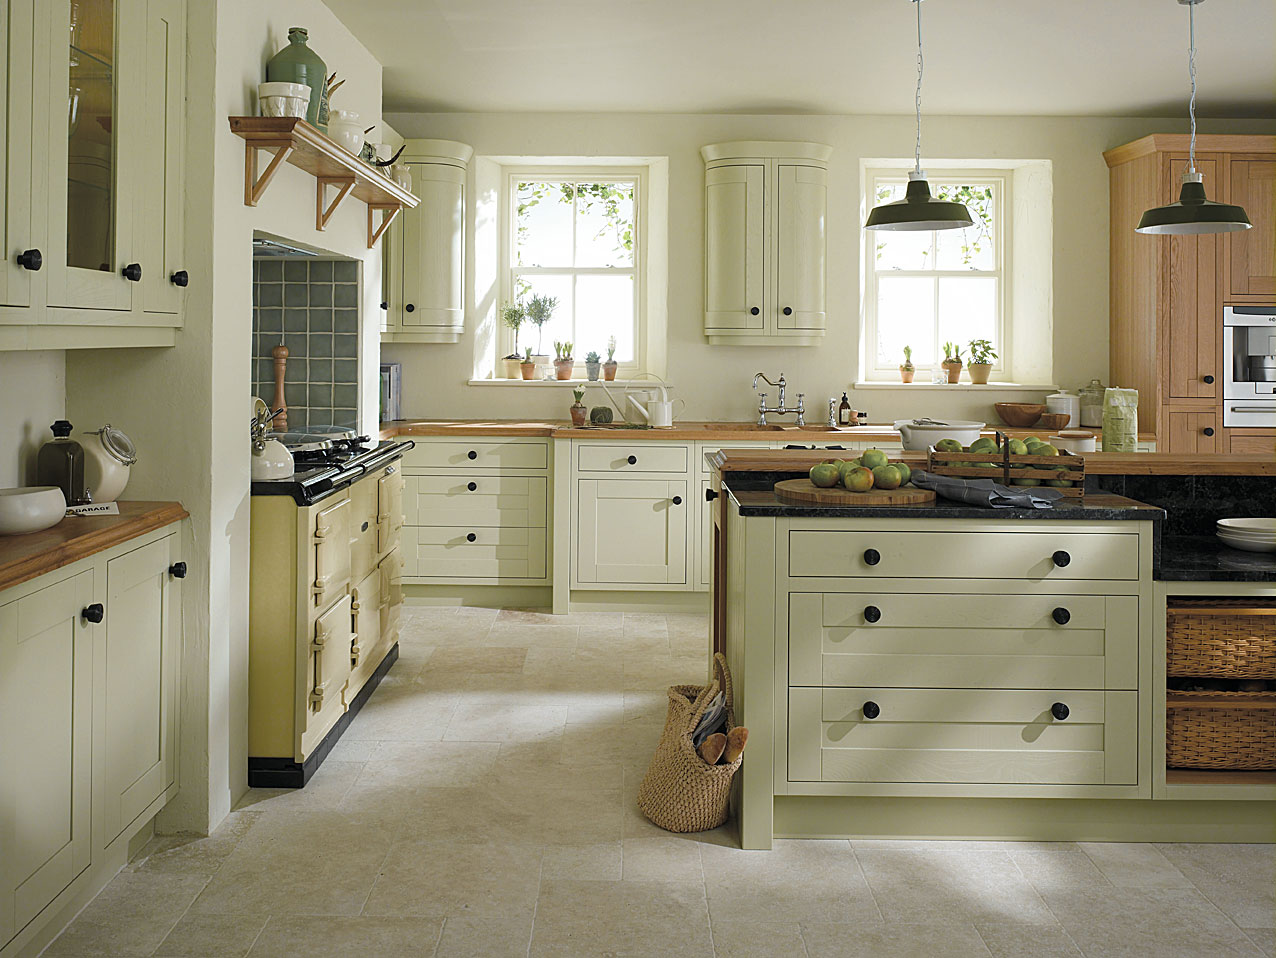 Kitchen storage ideas design cabinets islands kitchens Traditional kitchen ideas 2016